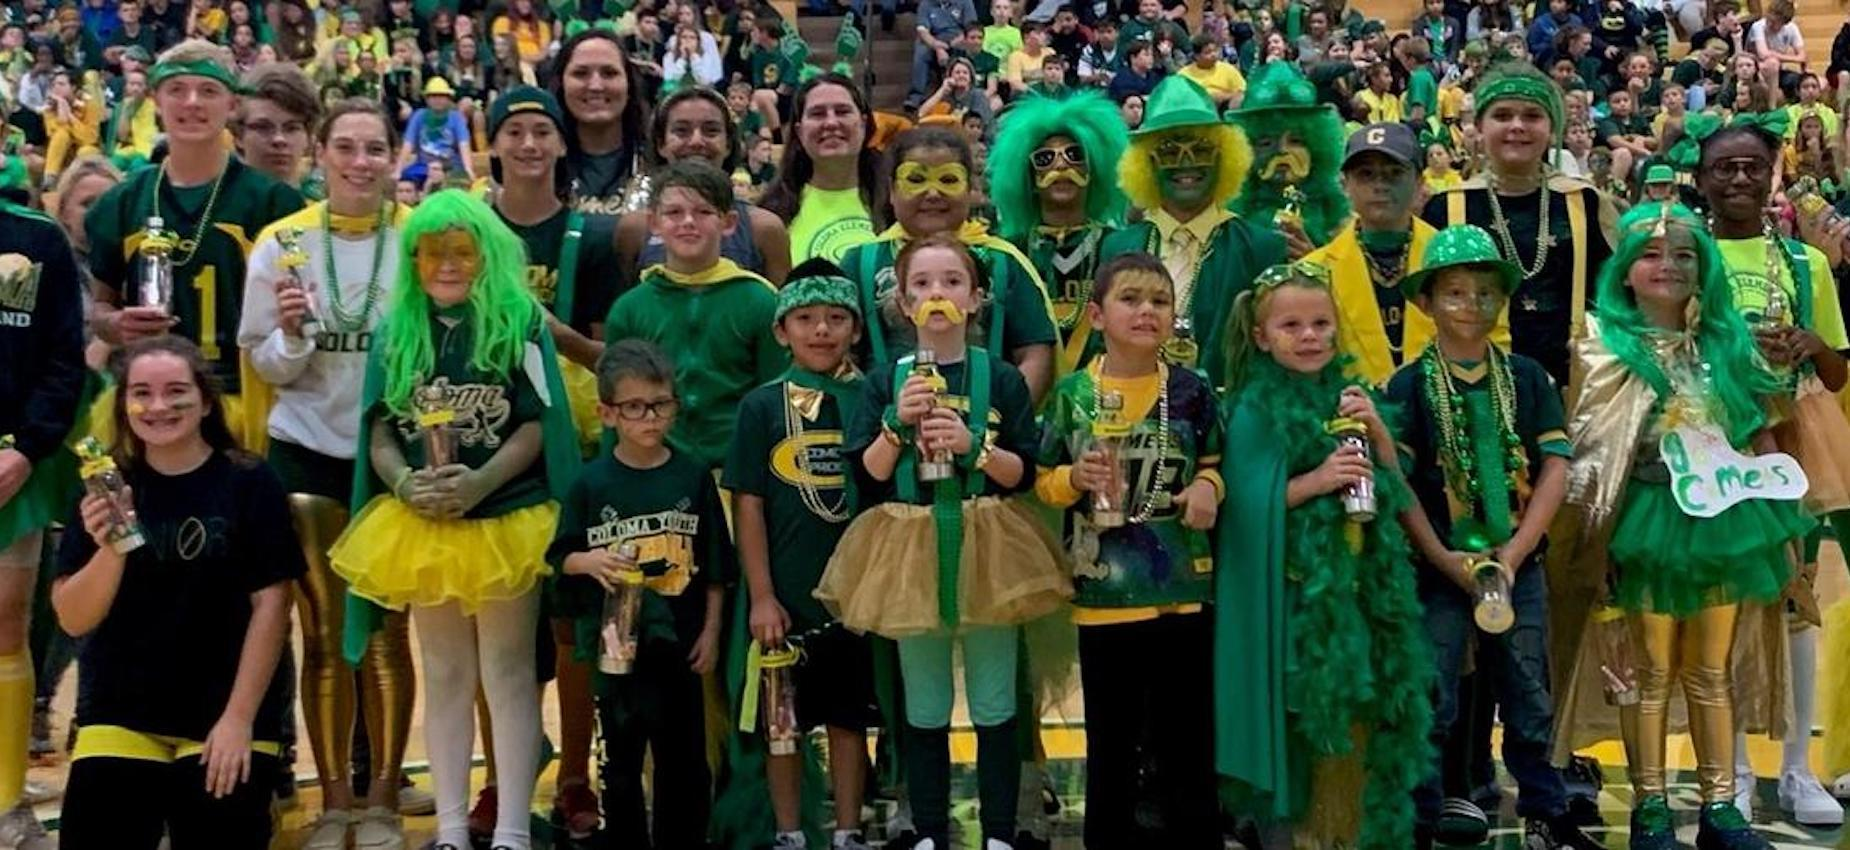 Green & Gold Spirit Winners 2019